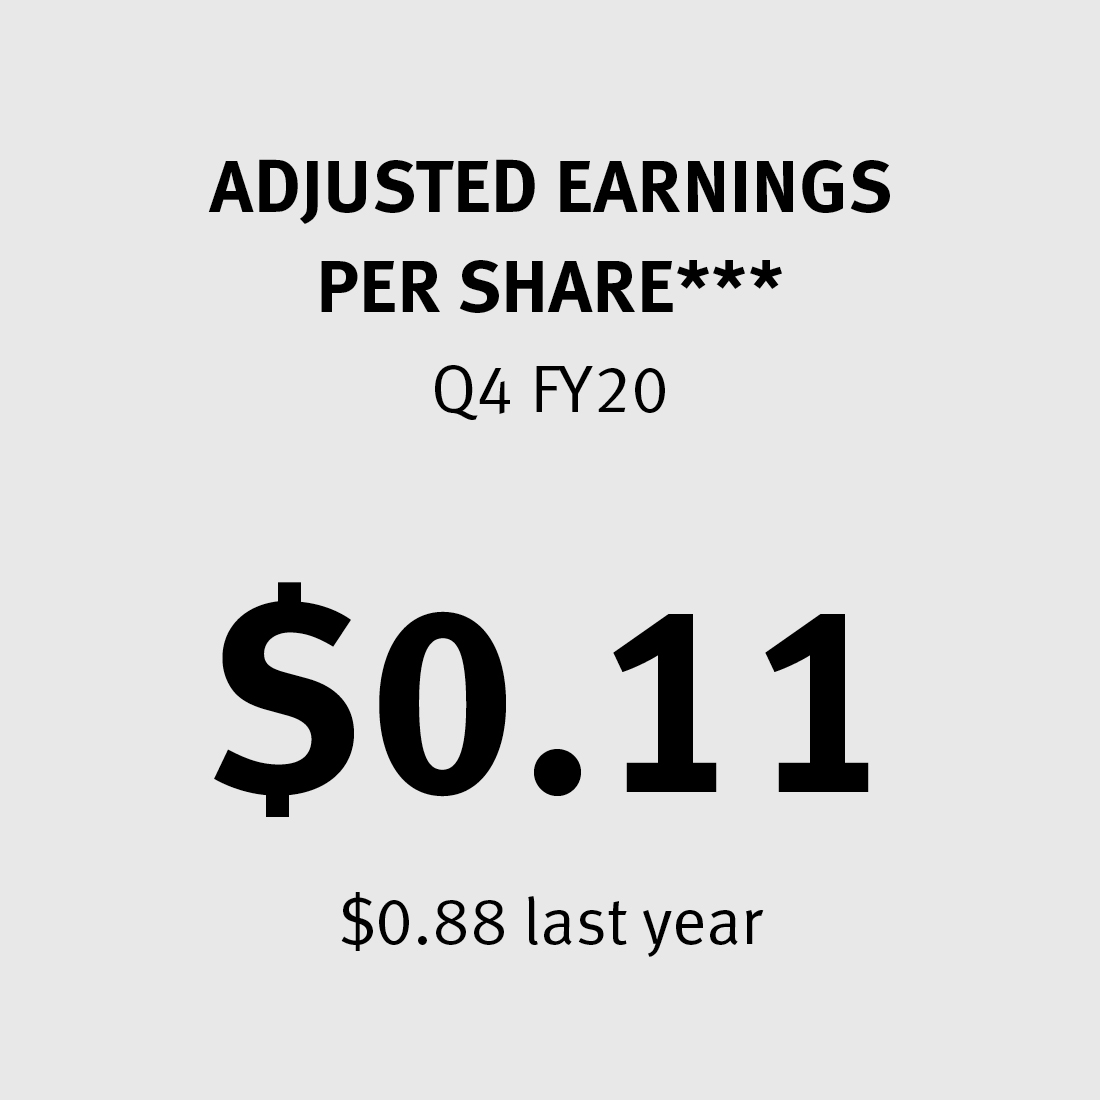 Adjusted Earnings per Share $0.11 ($0.88 last year)***